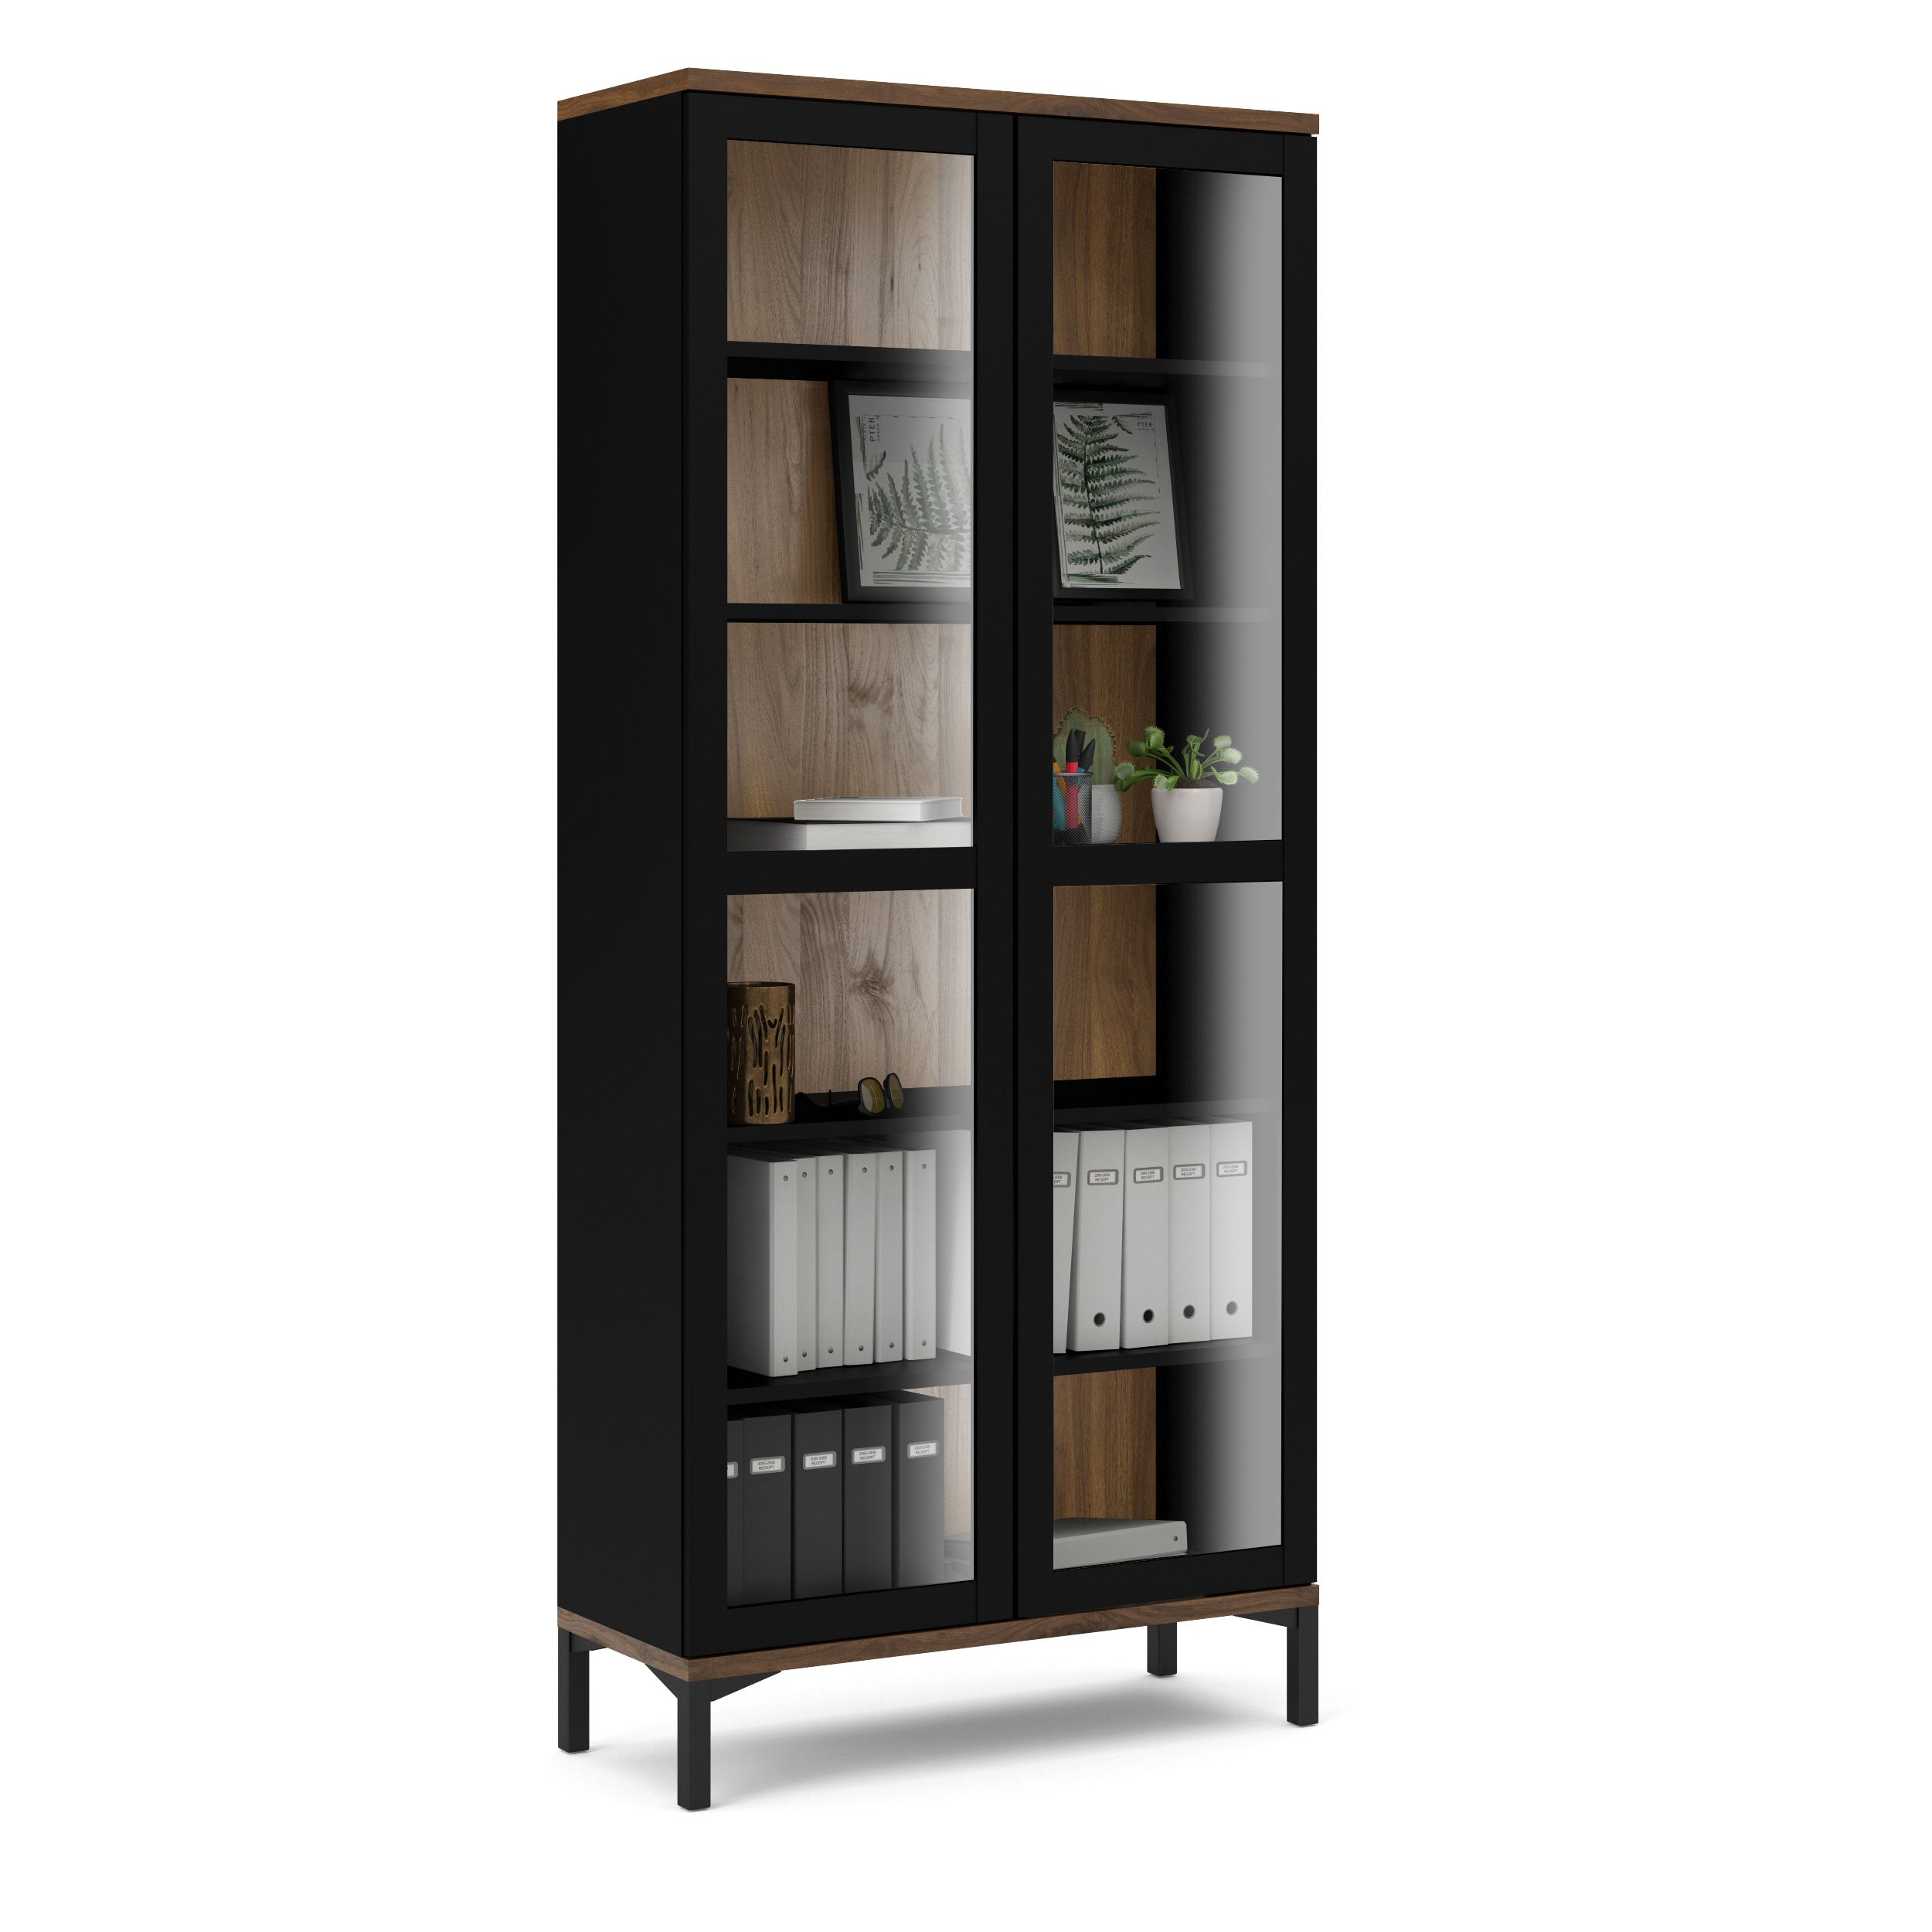 Home Tvilum Wall Mounted Display Cabinets Modern China Cabinet